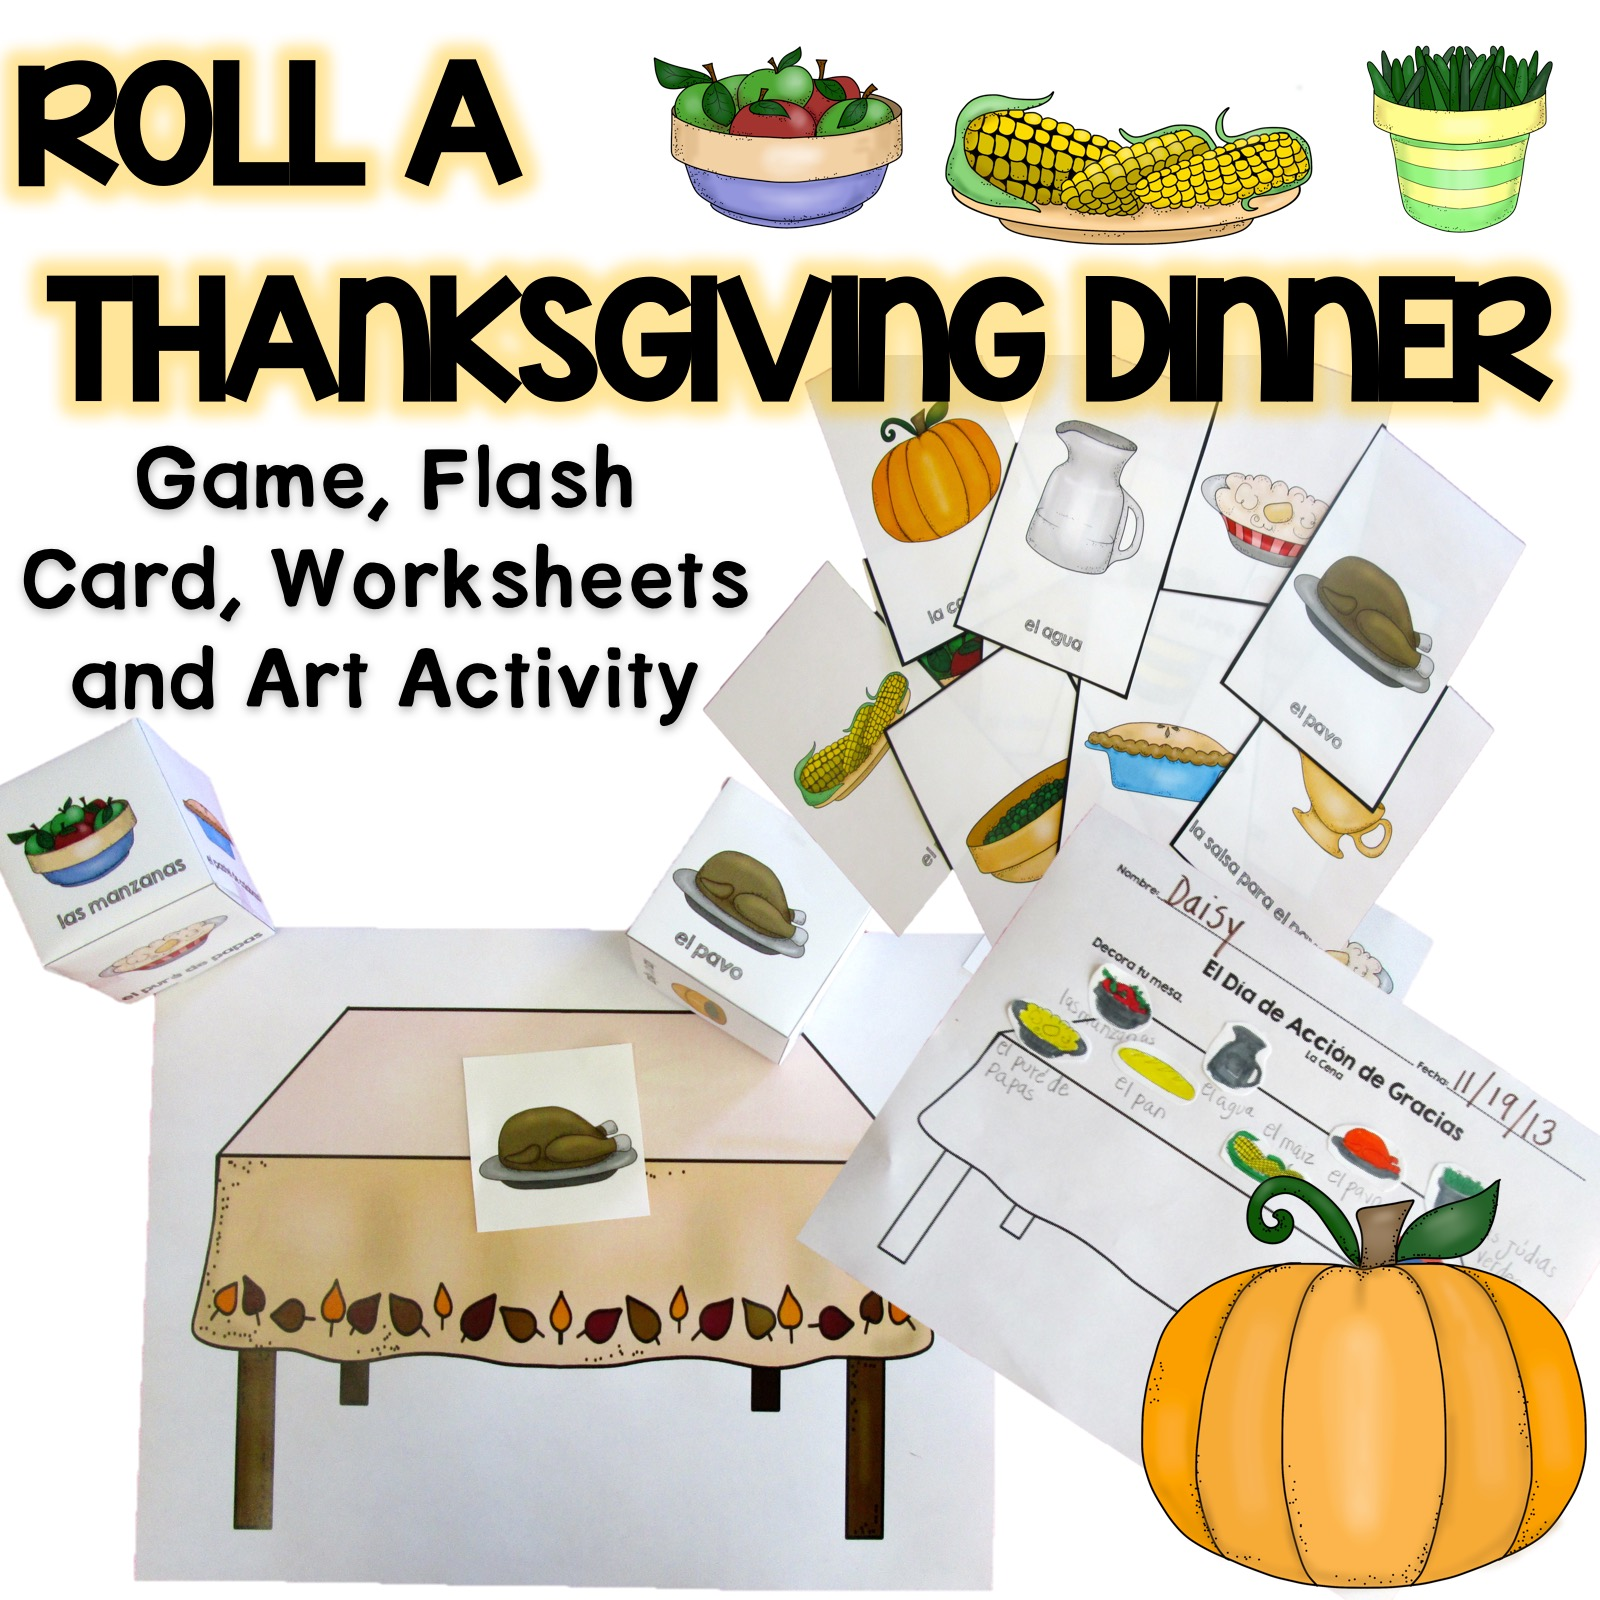 Roll A Thanksgiving Dinner In Spanish Product